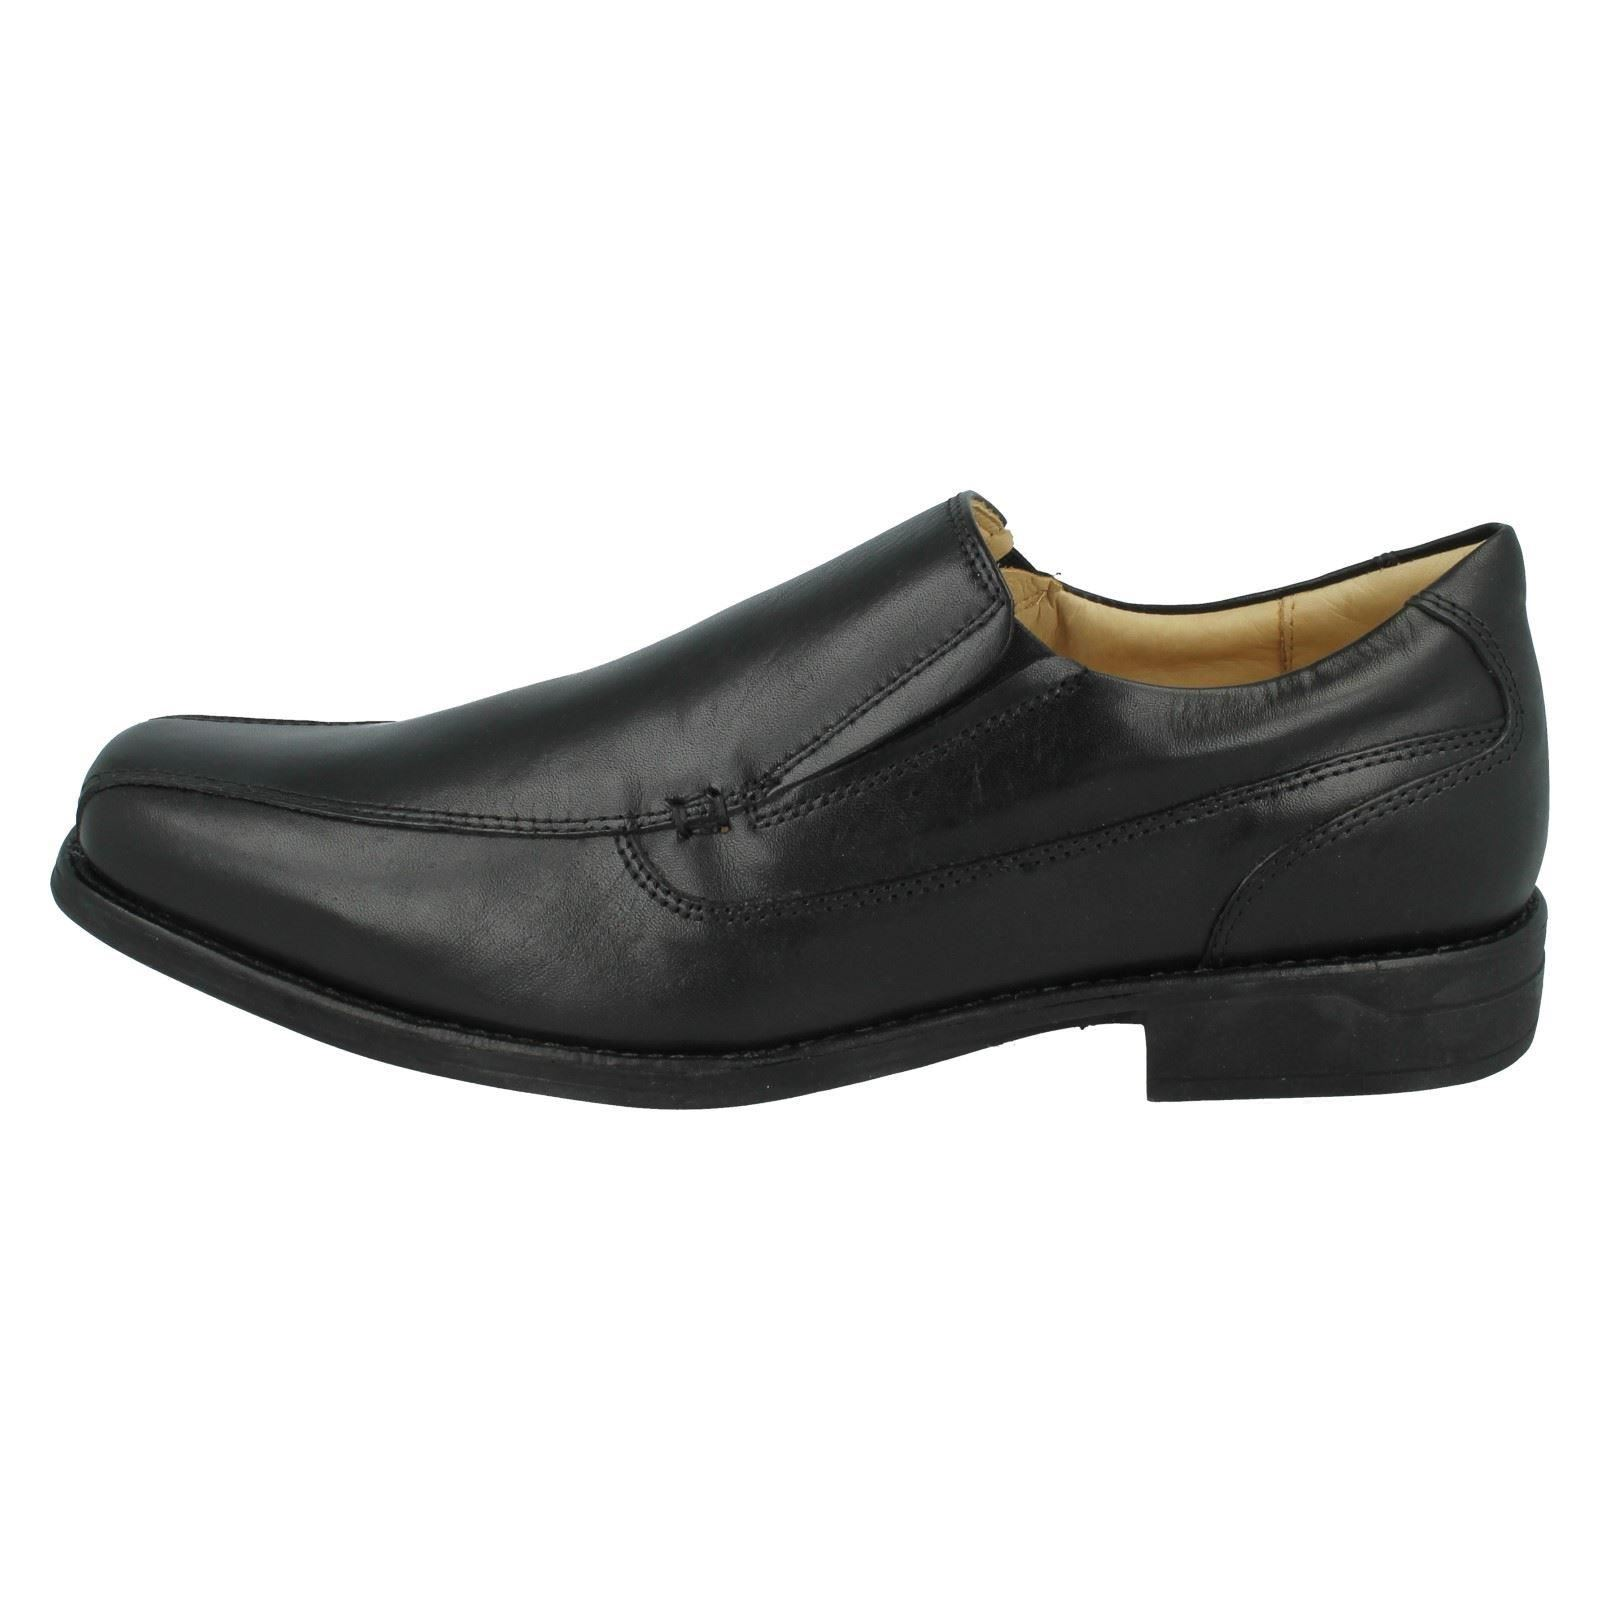 Mens Anatomic & Co Formal Poloni Shoes Style - Poloni Formal 4dfcc4